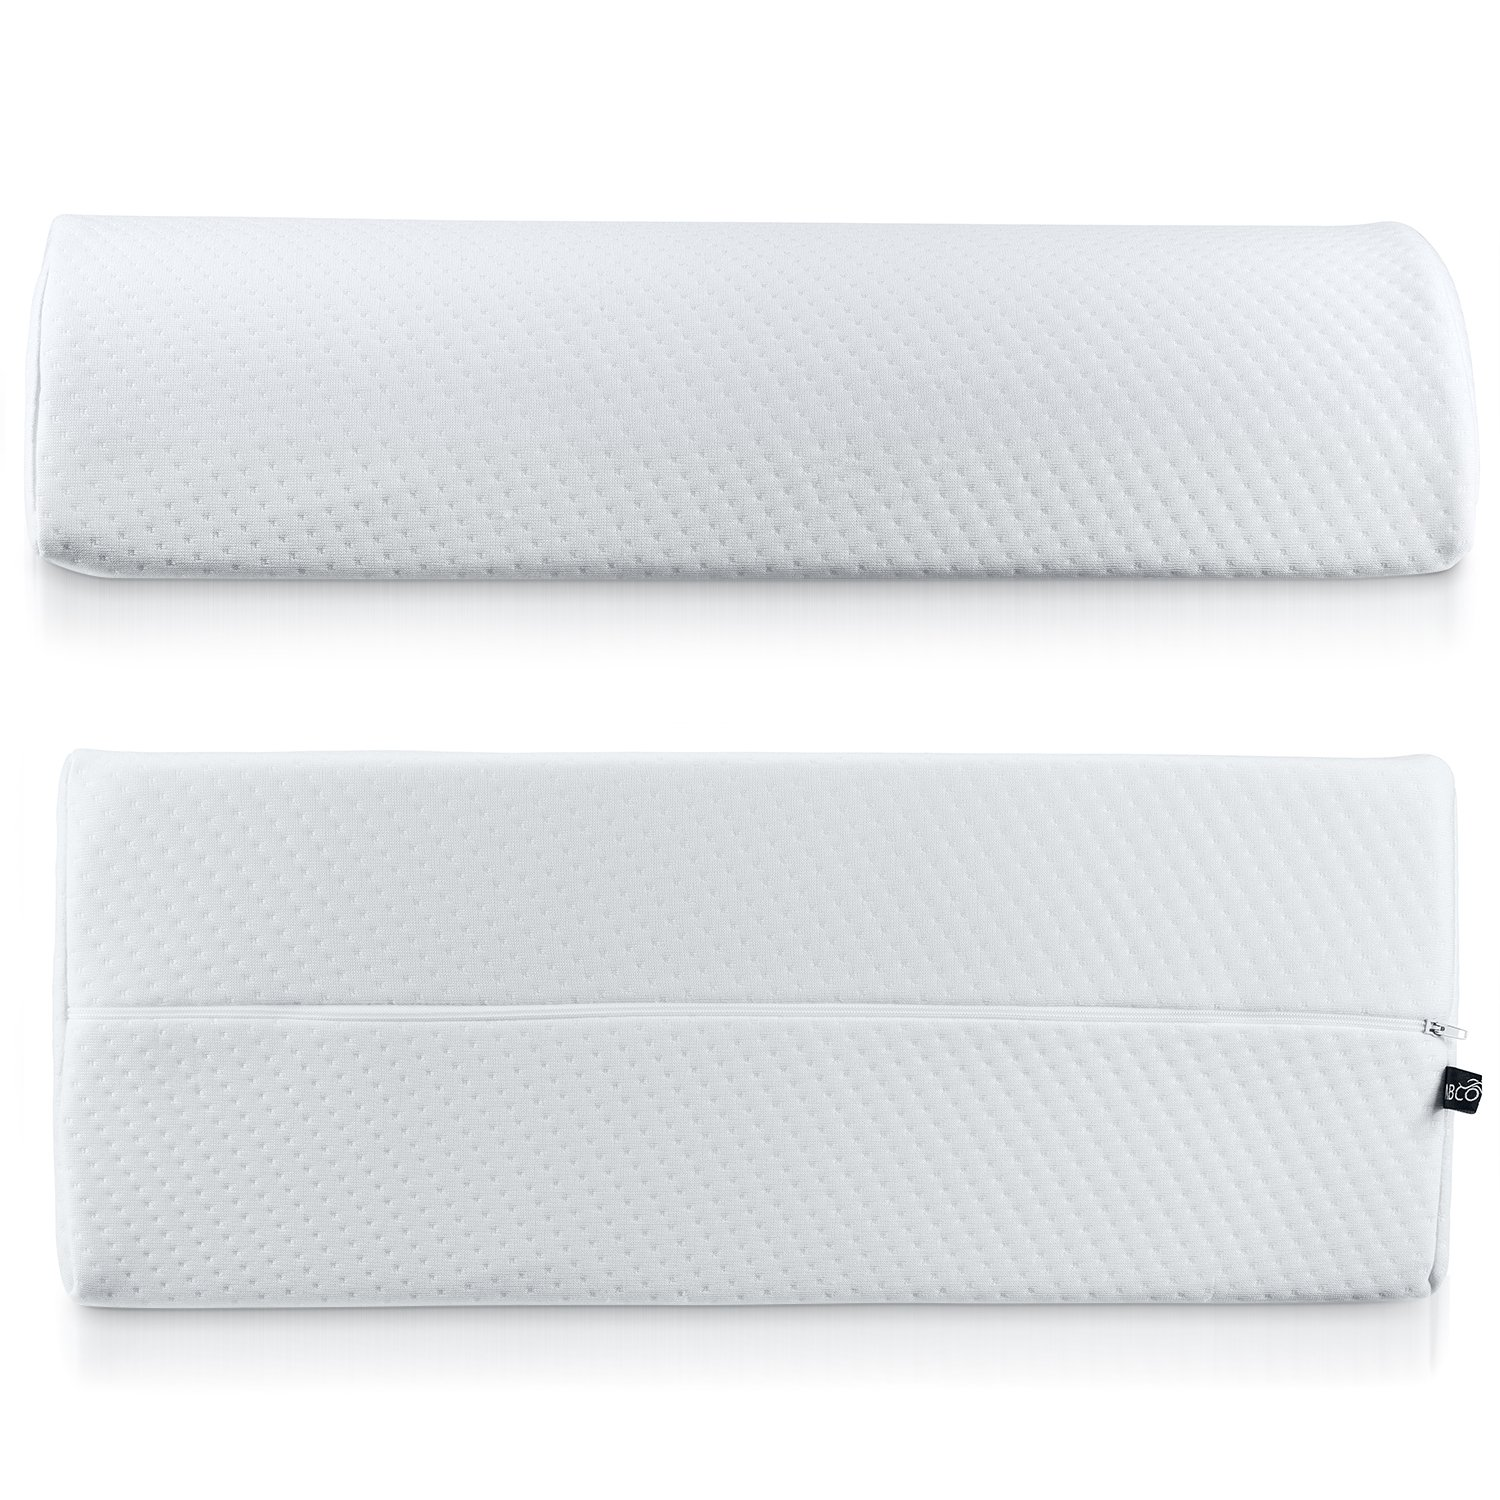 Abco Tech Half Moon Pillow Bolster - Pain Relief Memory Foam Cushion with Removable/Washable Cotton Cover – Reduced Stress on Spine, Effective Support for Side and Back Sleepers etc. (White) by Abco Tech (Image #7)